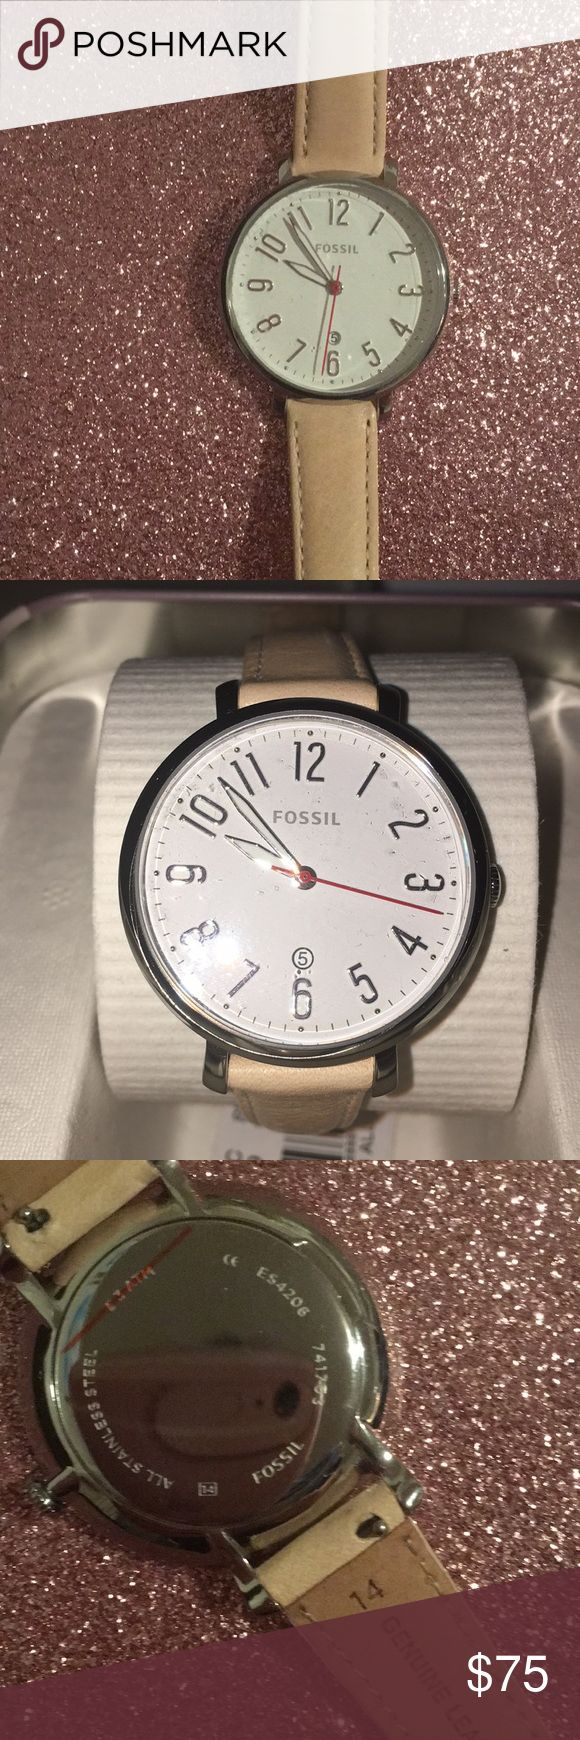 FOSSIL - LADIES WATCH NEW Fossil Accessories Watches